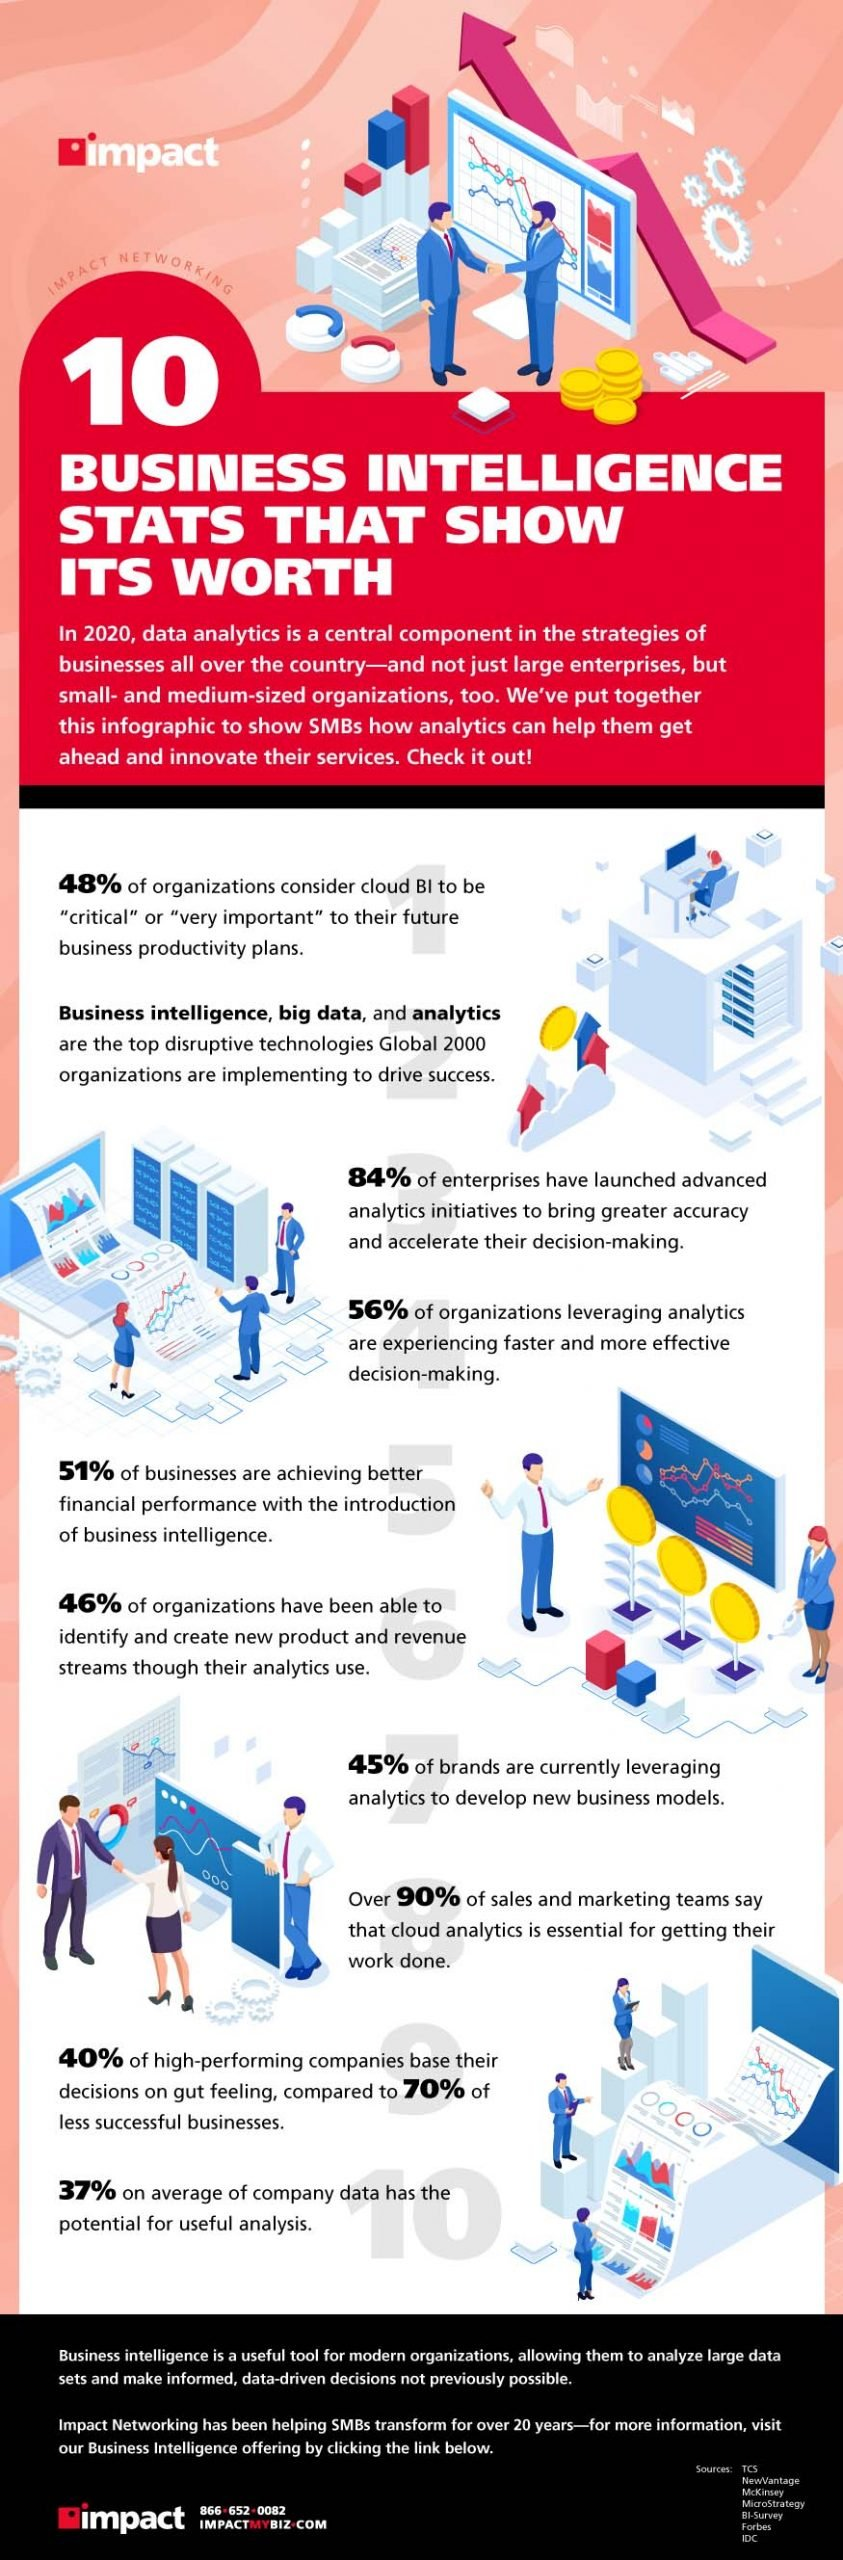 Infographic on 10 business intelligence stats that show its worth